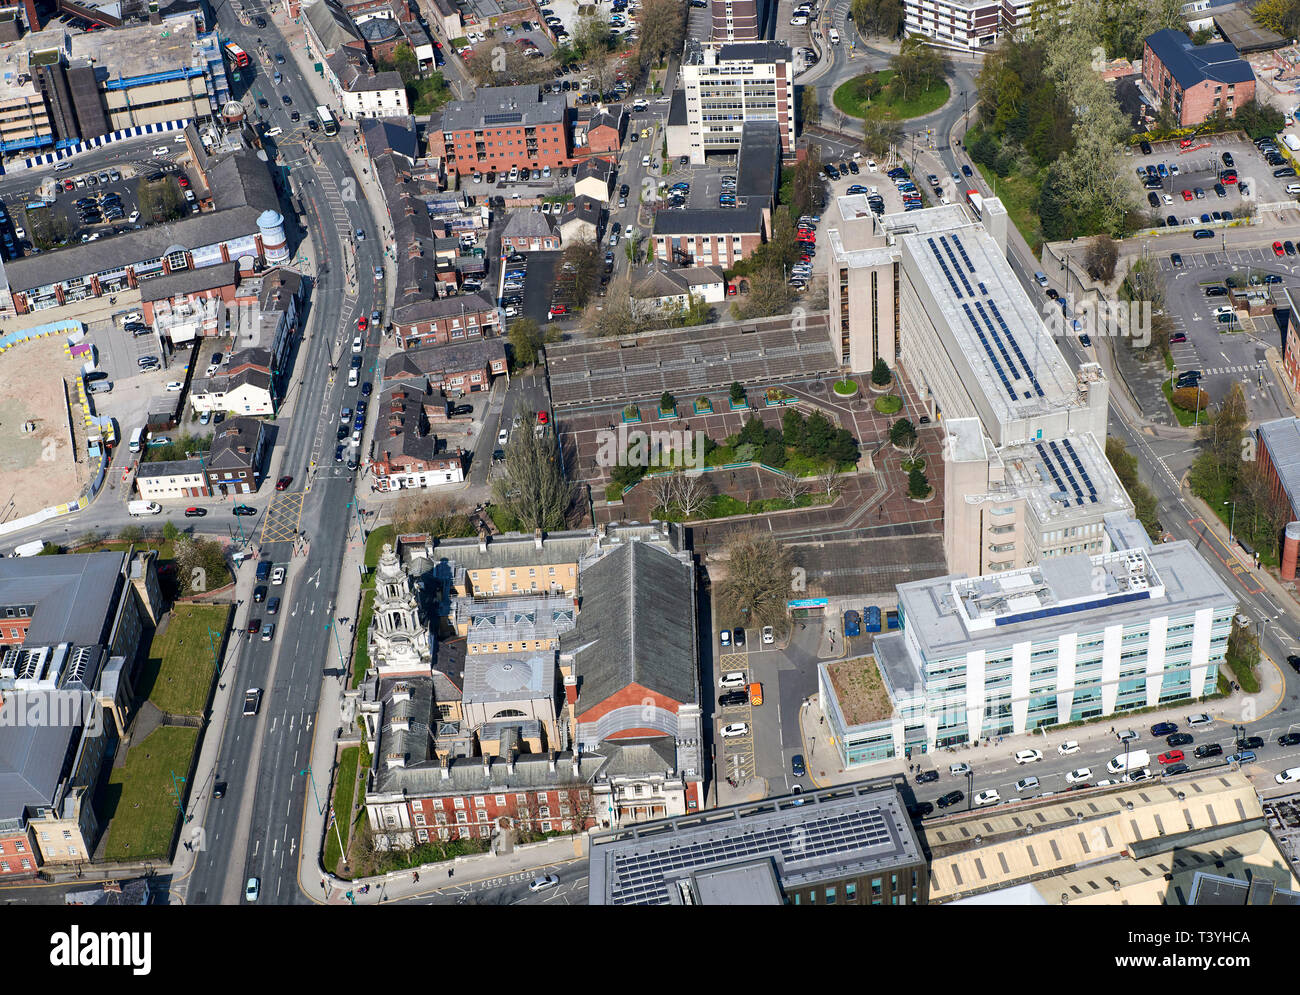 An aerial view of Stockport Civic area, the Town hall and Law Courts, North West England, UK - Stock Image